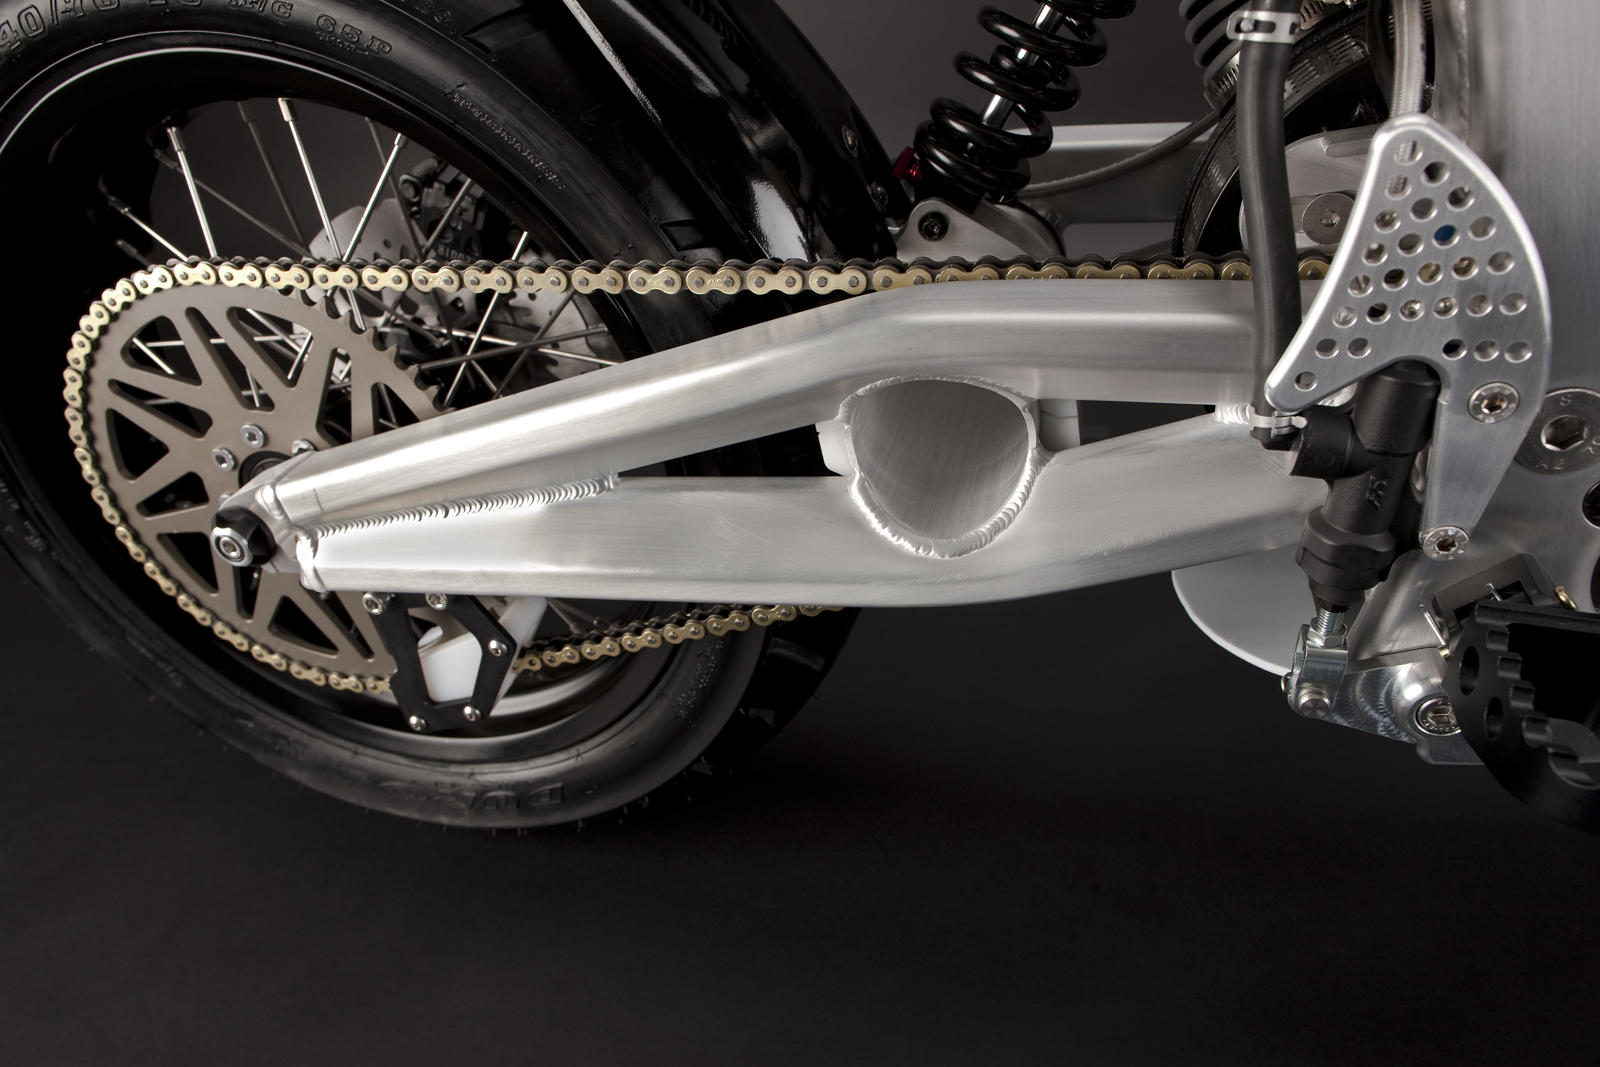 '.2010 Zero S Electric Motorcycle: Swing Arm.'